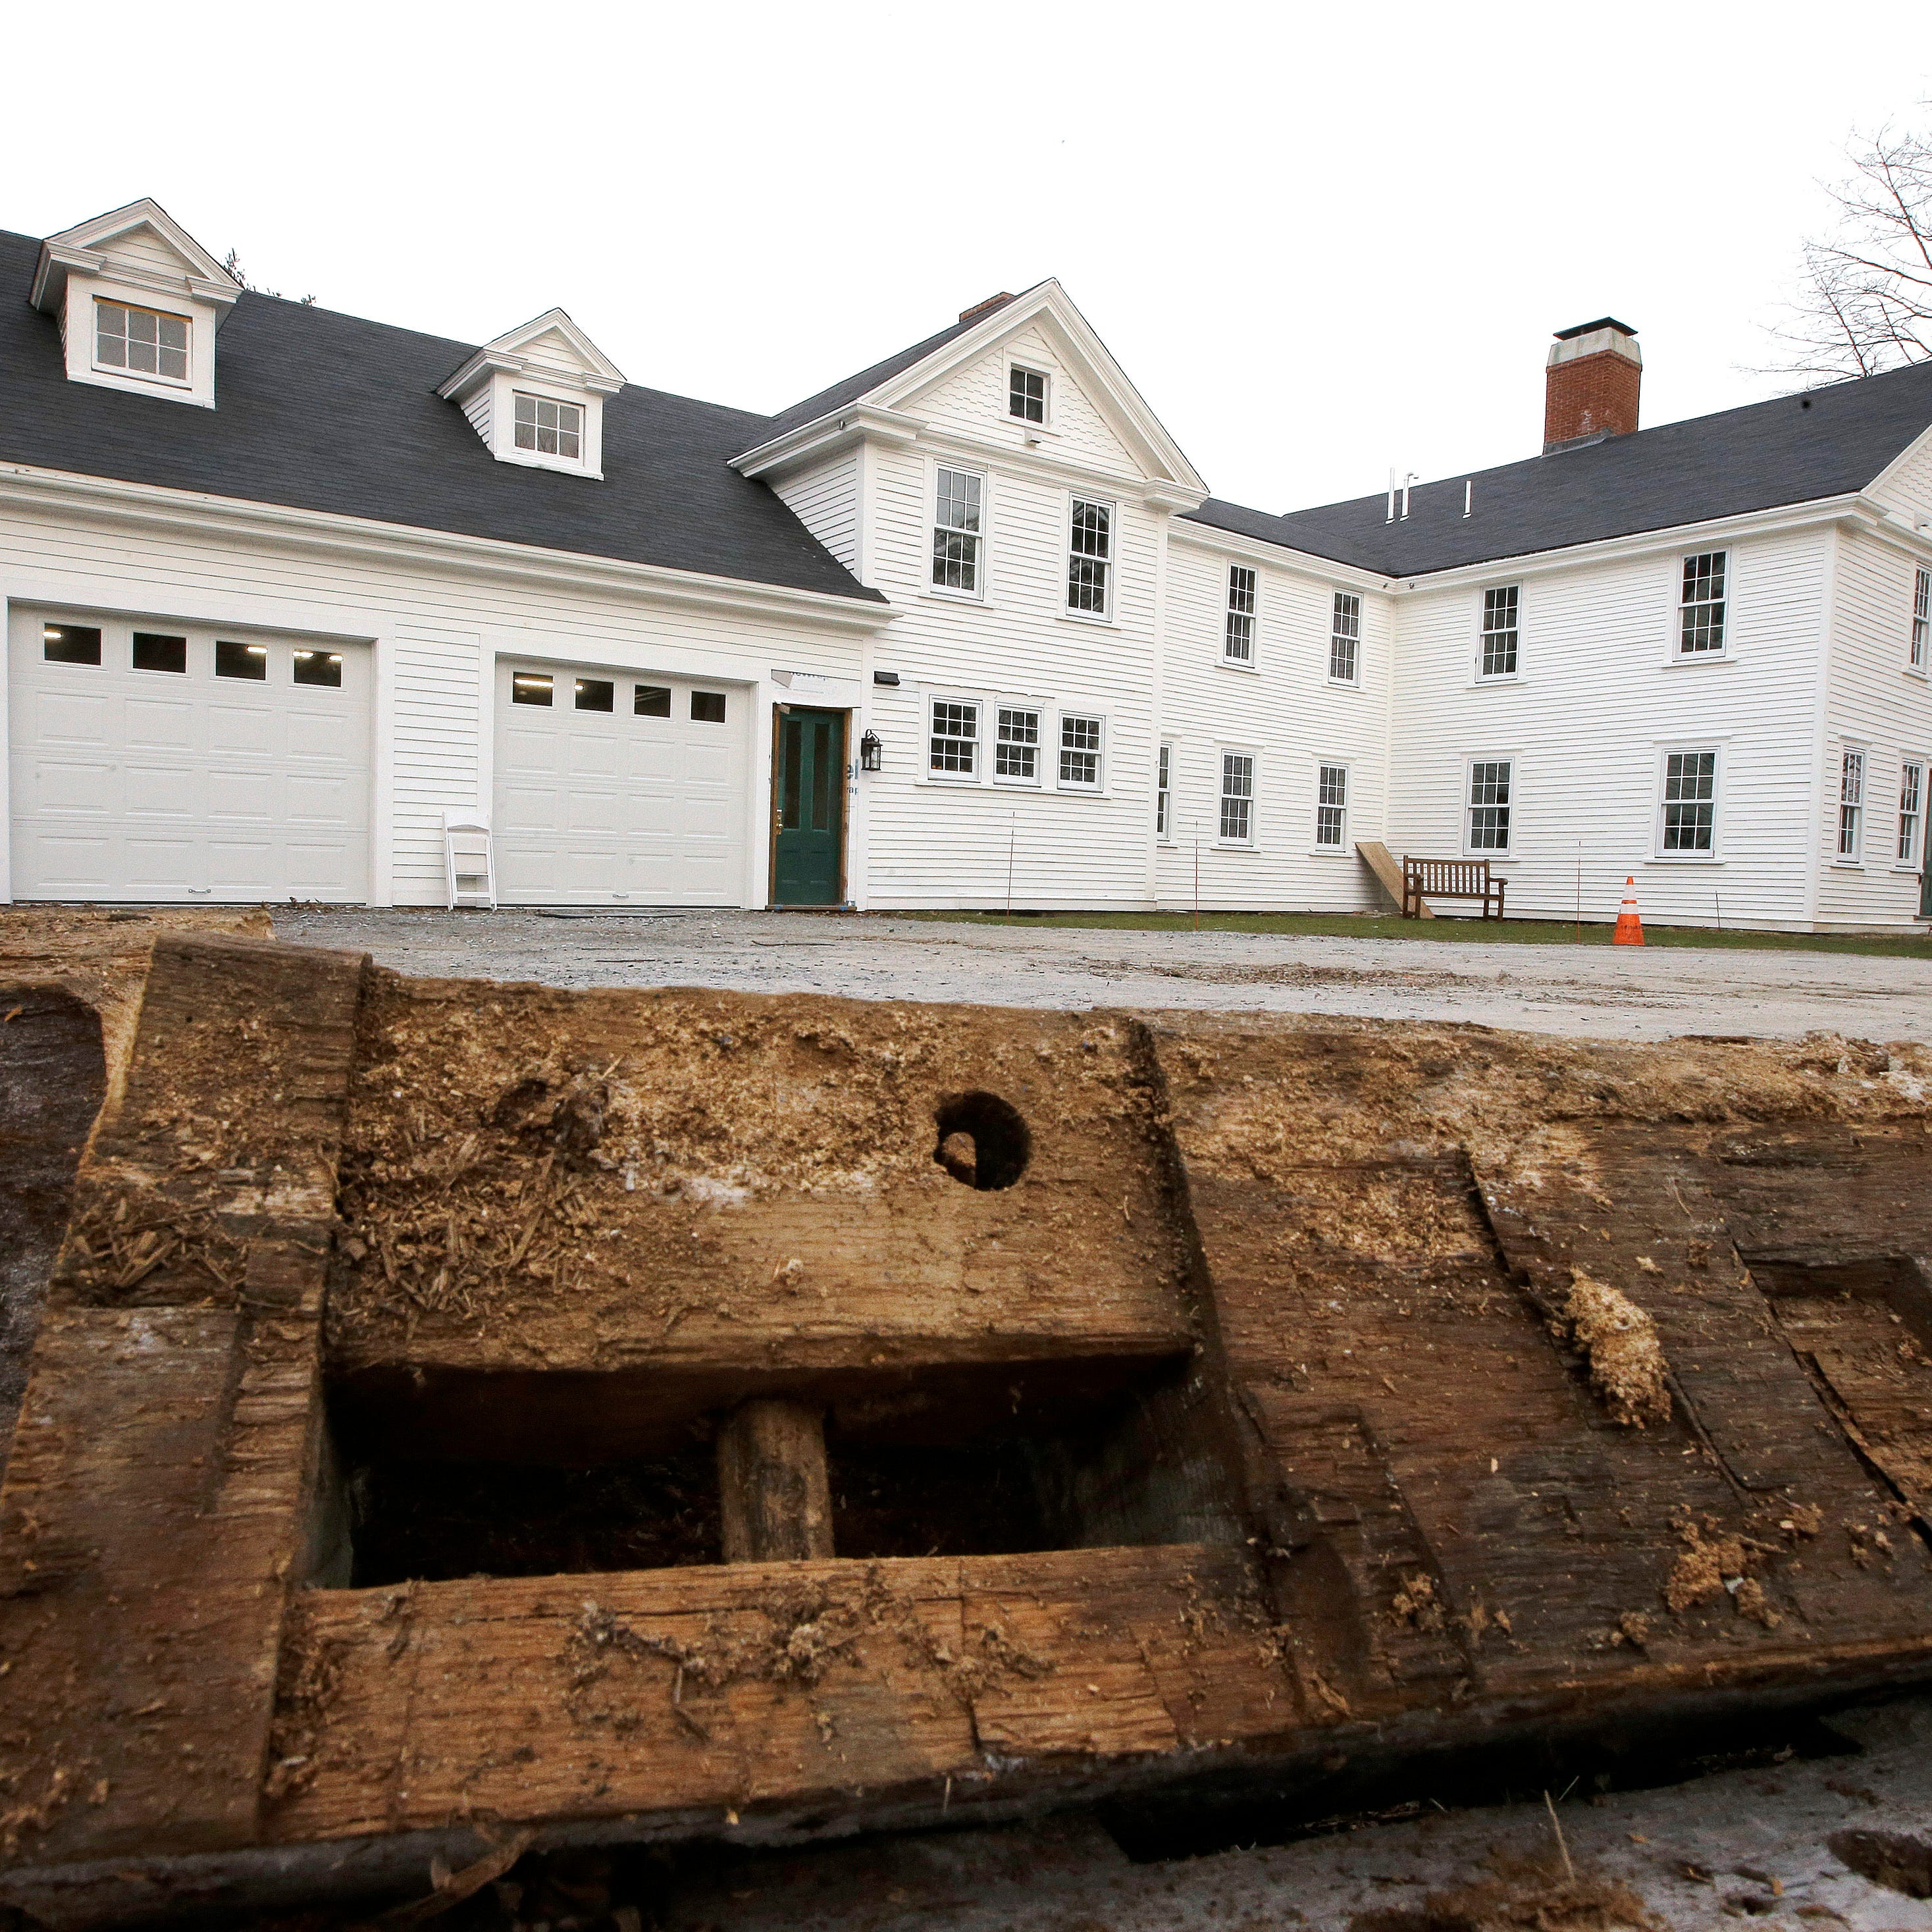 A discarded beam rests in the driveway of the home where Sarah Clayes lived, in Framingham, Mass., after leaving Salem, Mass., following the 1692 witch trials.